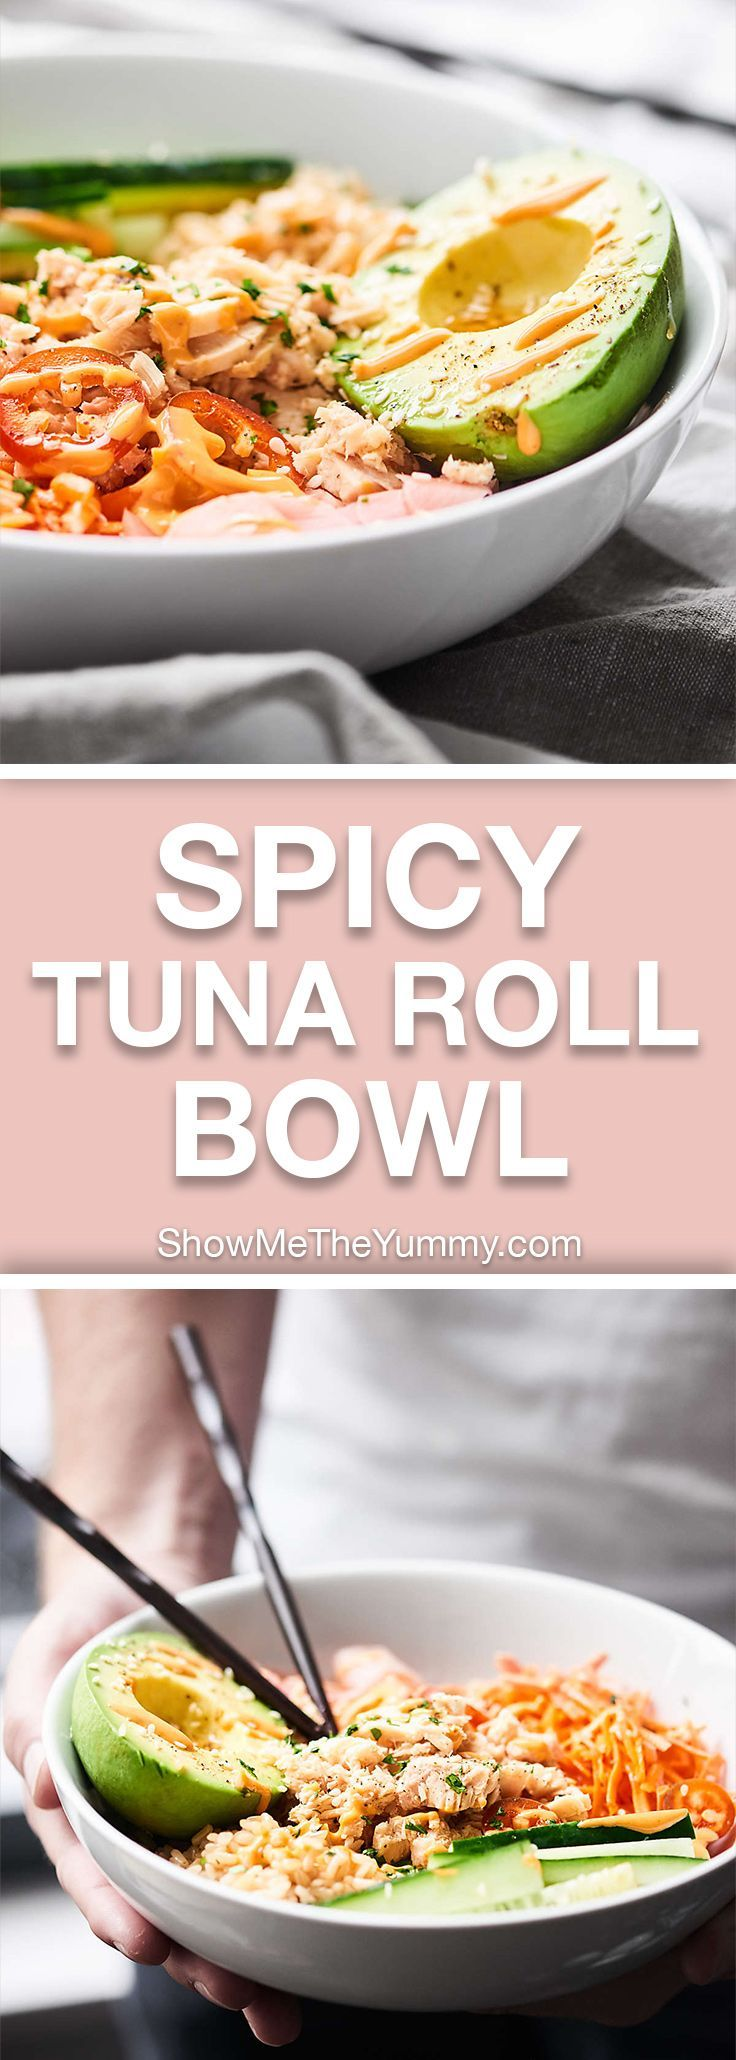 This Spicy Tuna Roll Bowl is a deconstructed version of the spicy tuna roll. Protein packed tuna, brown rice, and veggies all smothered in the most magically spicy mayo sauce. This bowl is *almost* too good to be true! showmetheyummy.com #tuna #healthy